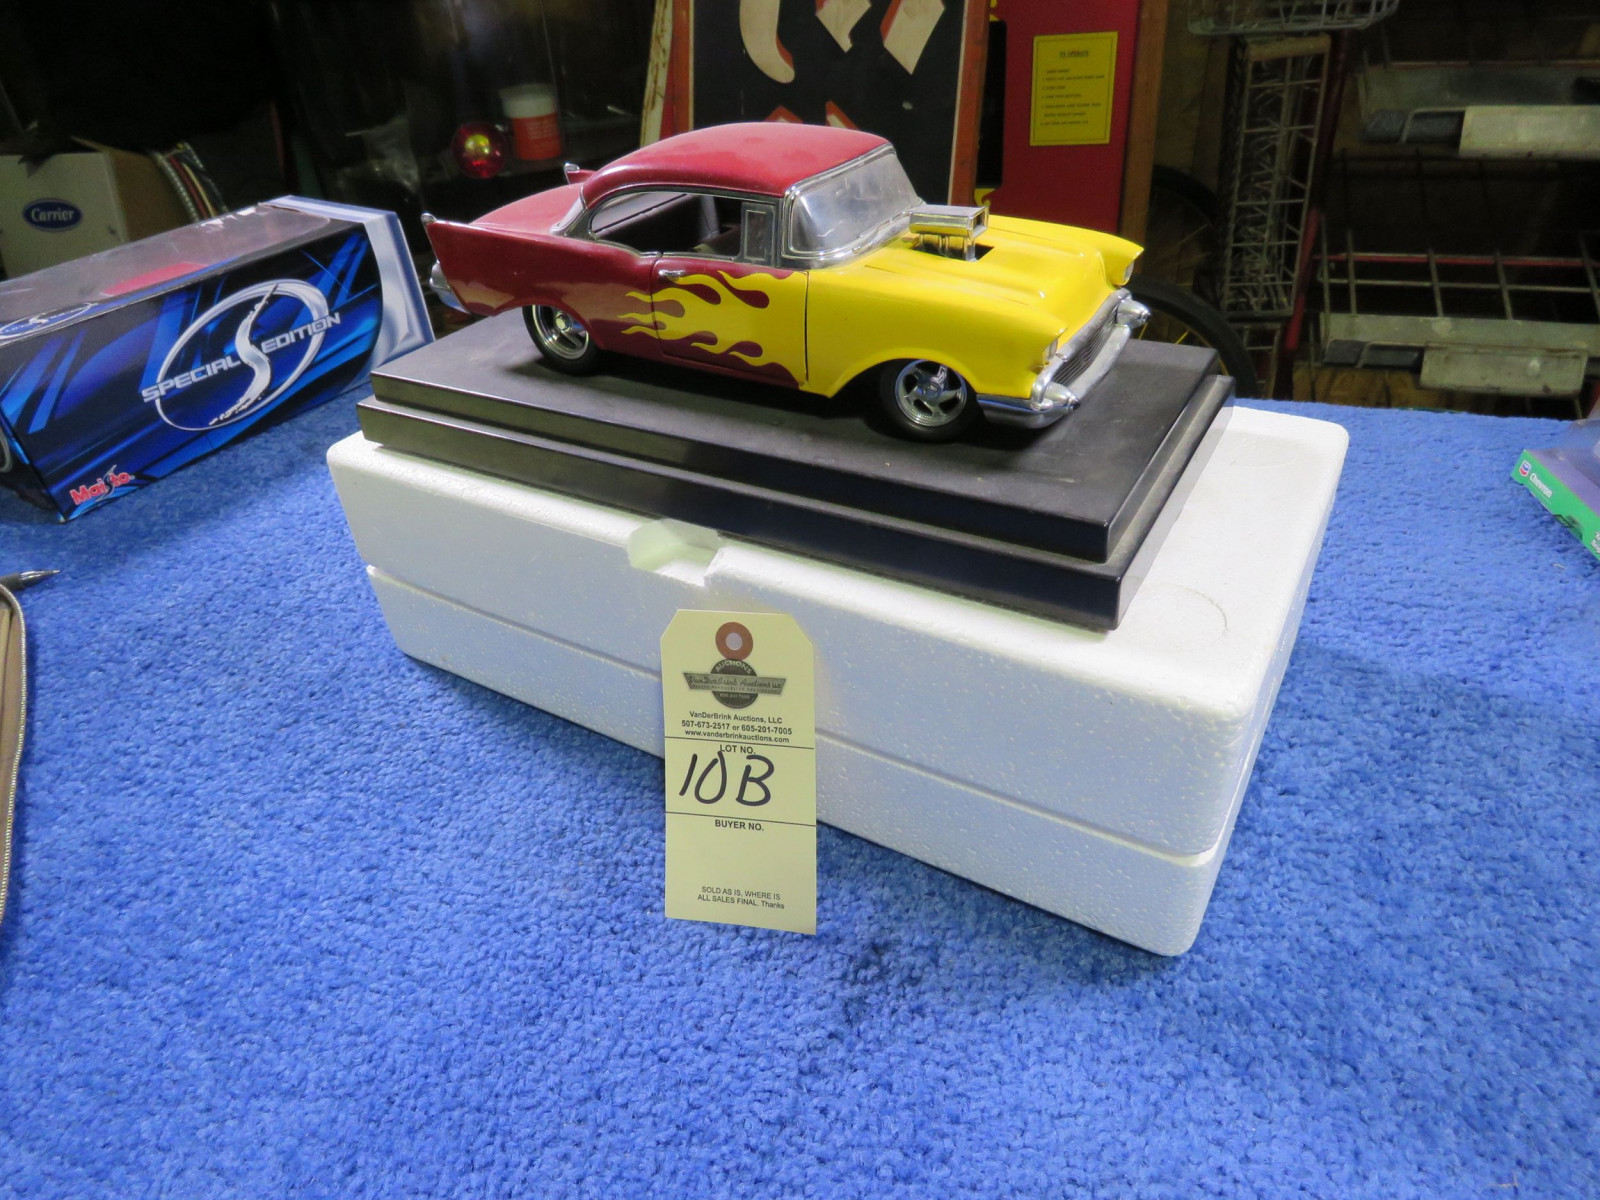 1957 Chevrolet Precision Model NIB - Image 1